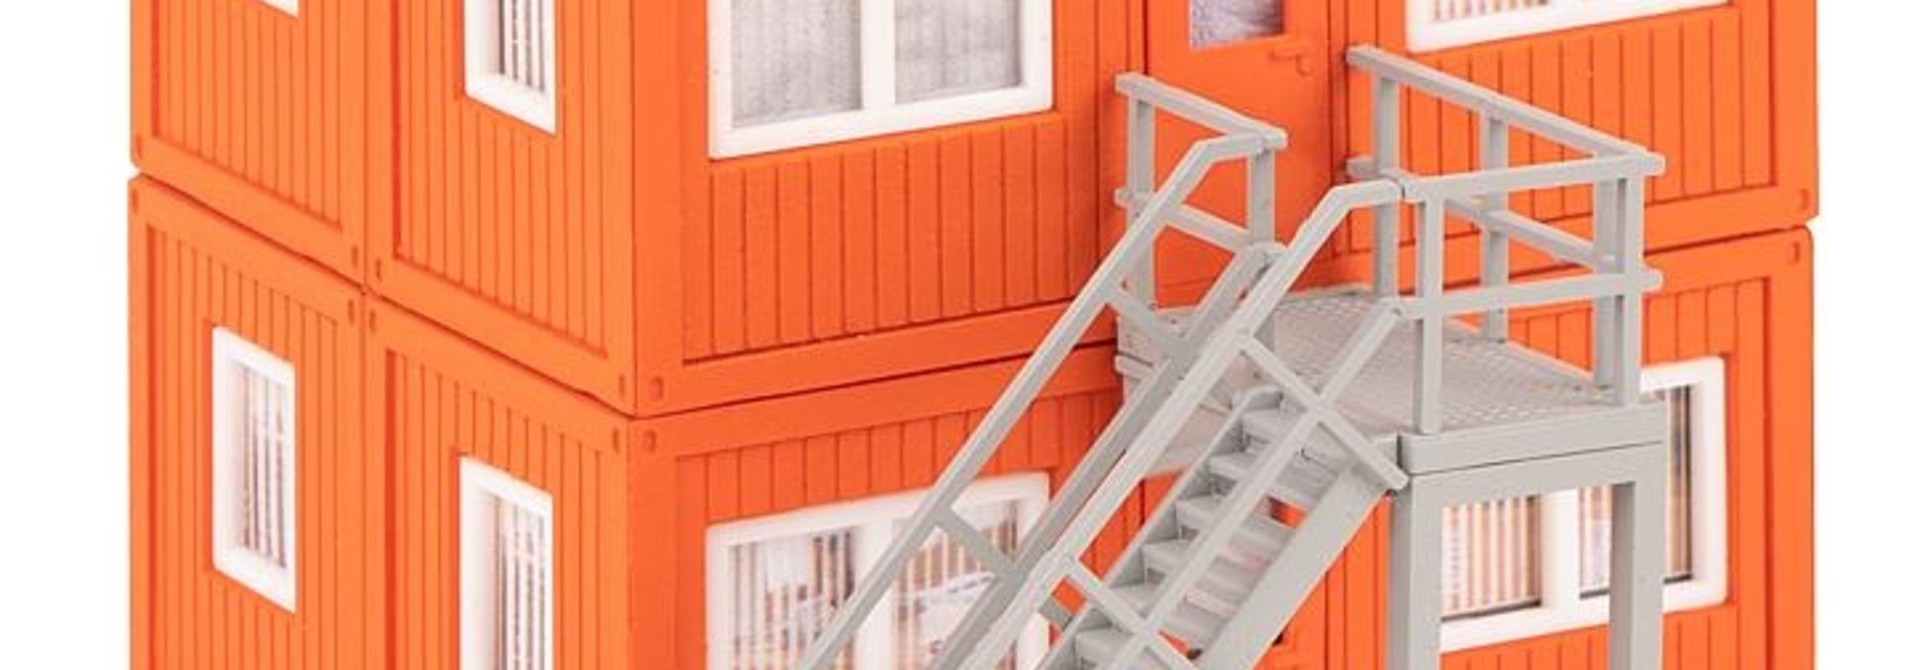 130135 4 BOUWCONTAINERS, ORANJE (2/19) *